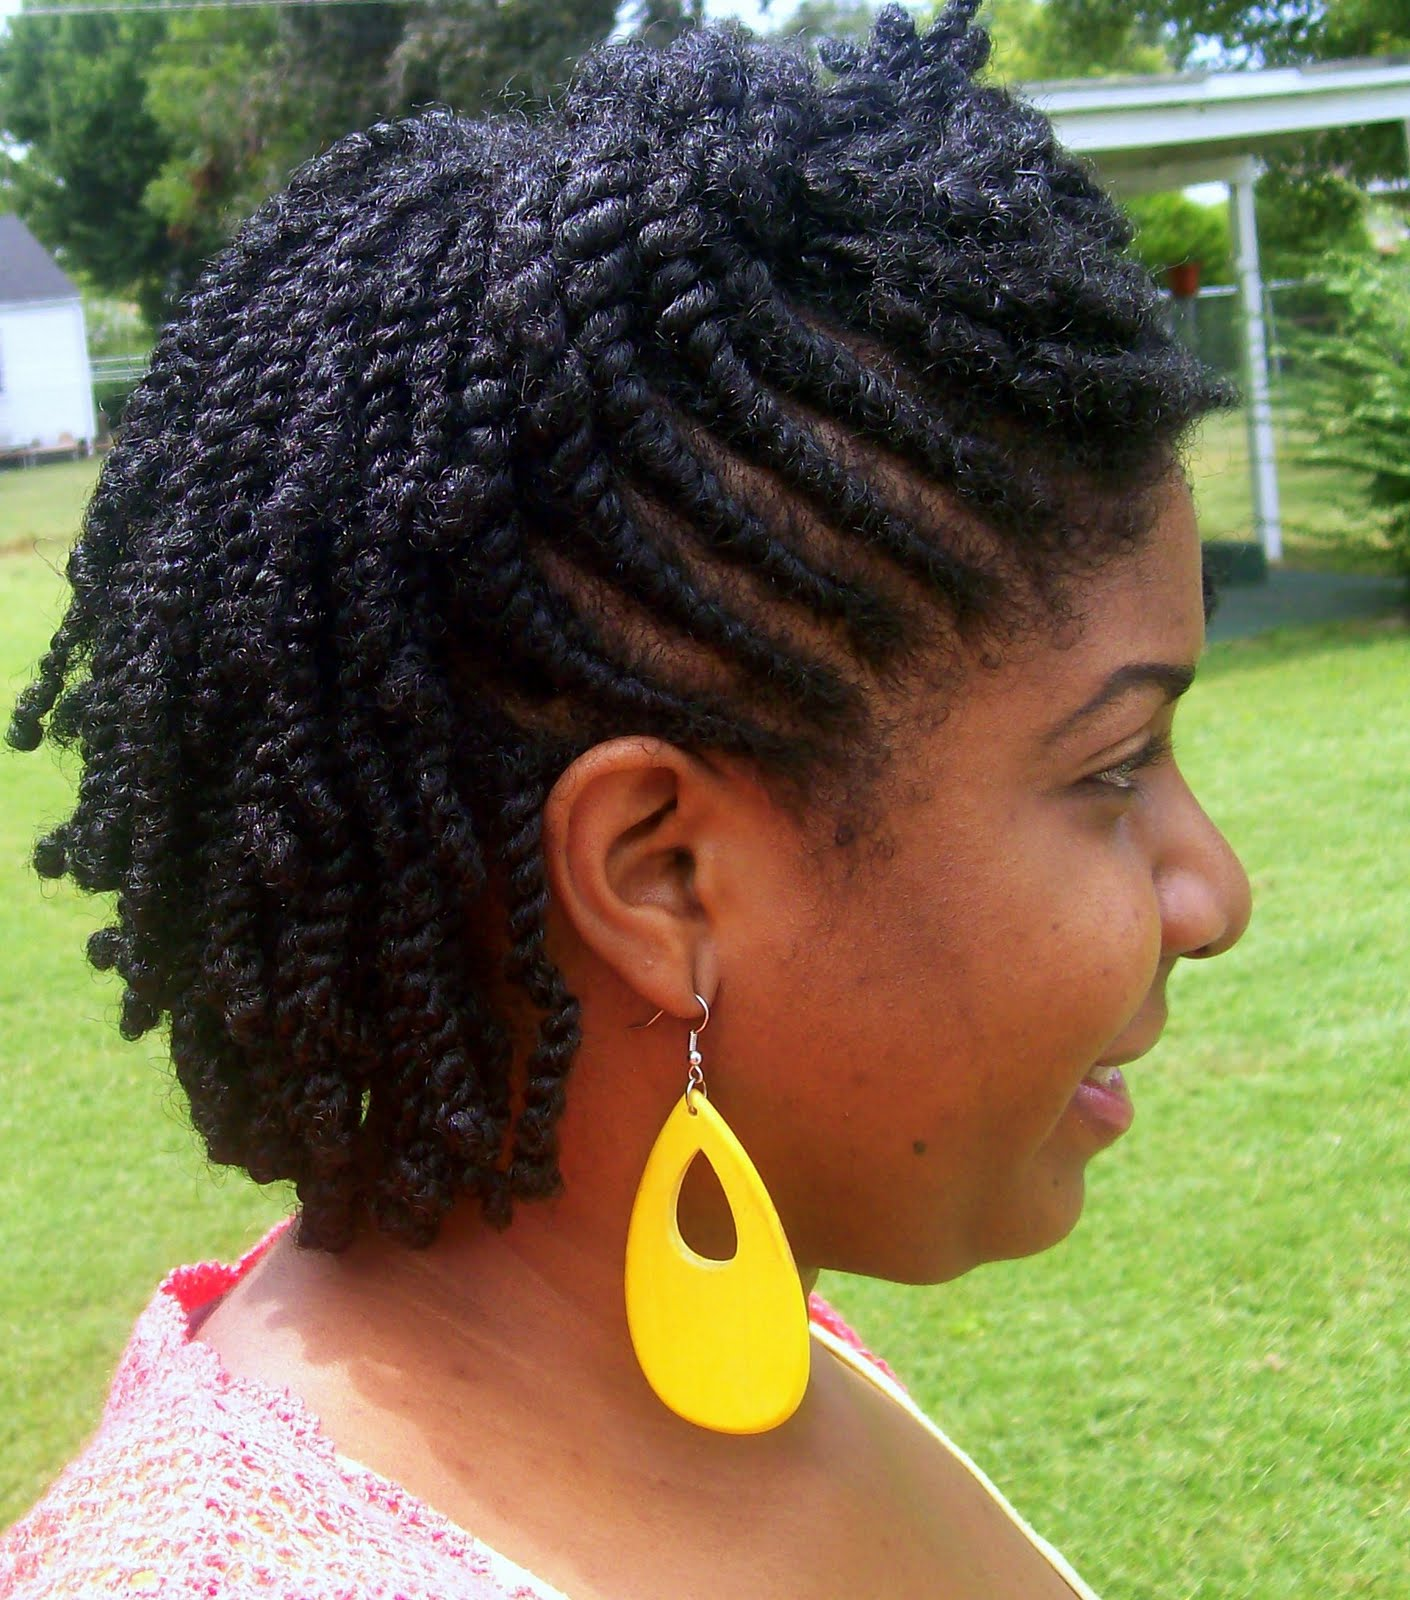 Frostoppa Ms Ggs Natural Hair Journey And Natural Hair Blog